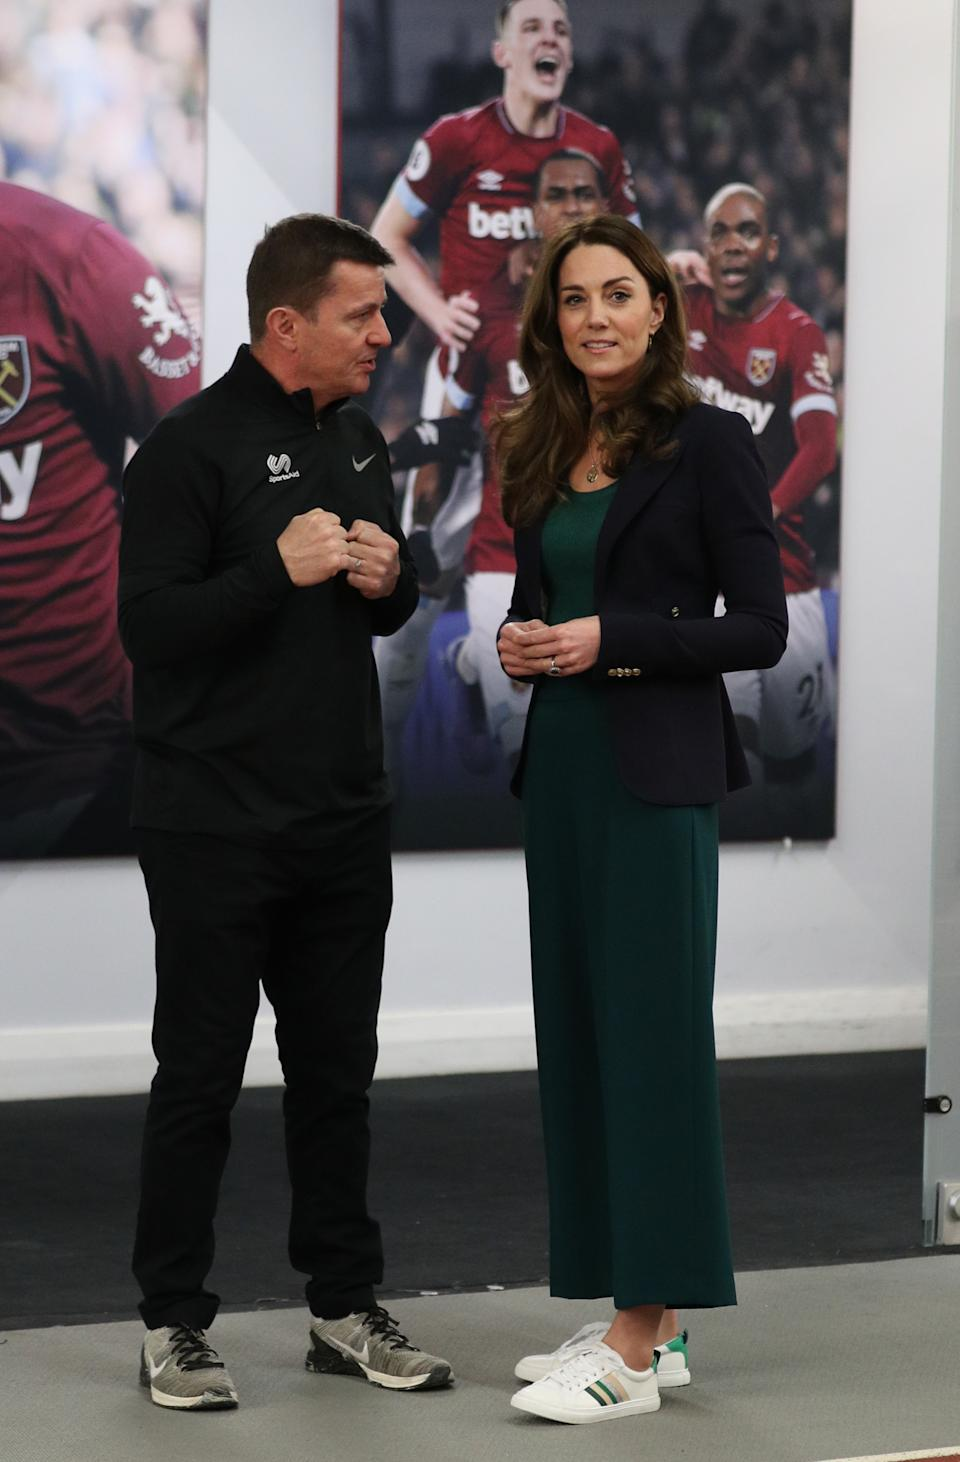 The Duchess of Cambridge wore a pair of M&S trainers, which have since been given a revamp, during a SportsAid event at the London Stadium in Stratford, London, in February 2020. (Getty Images)